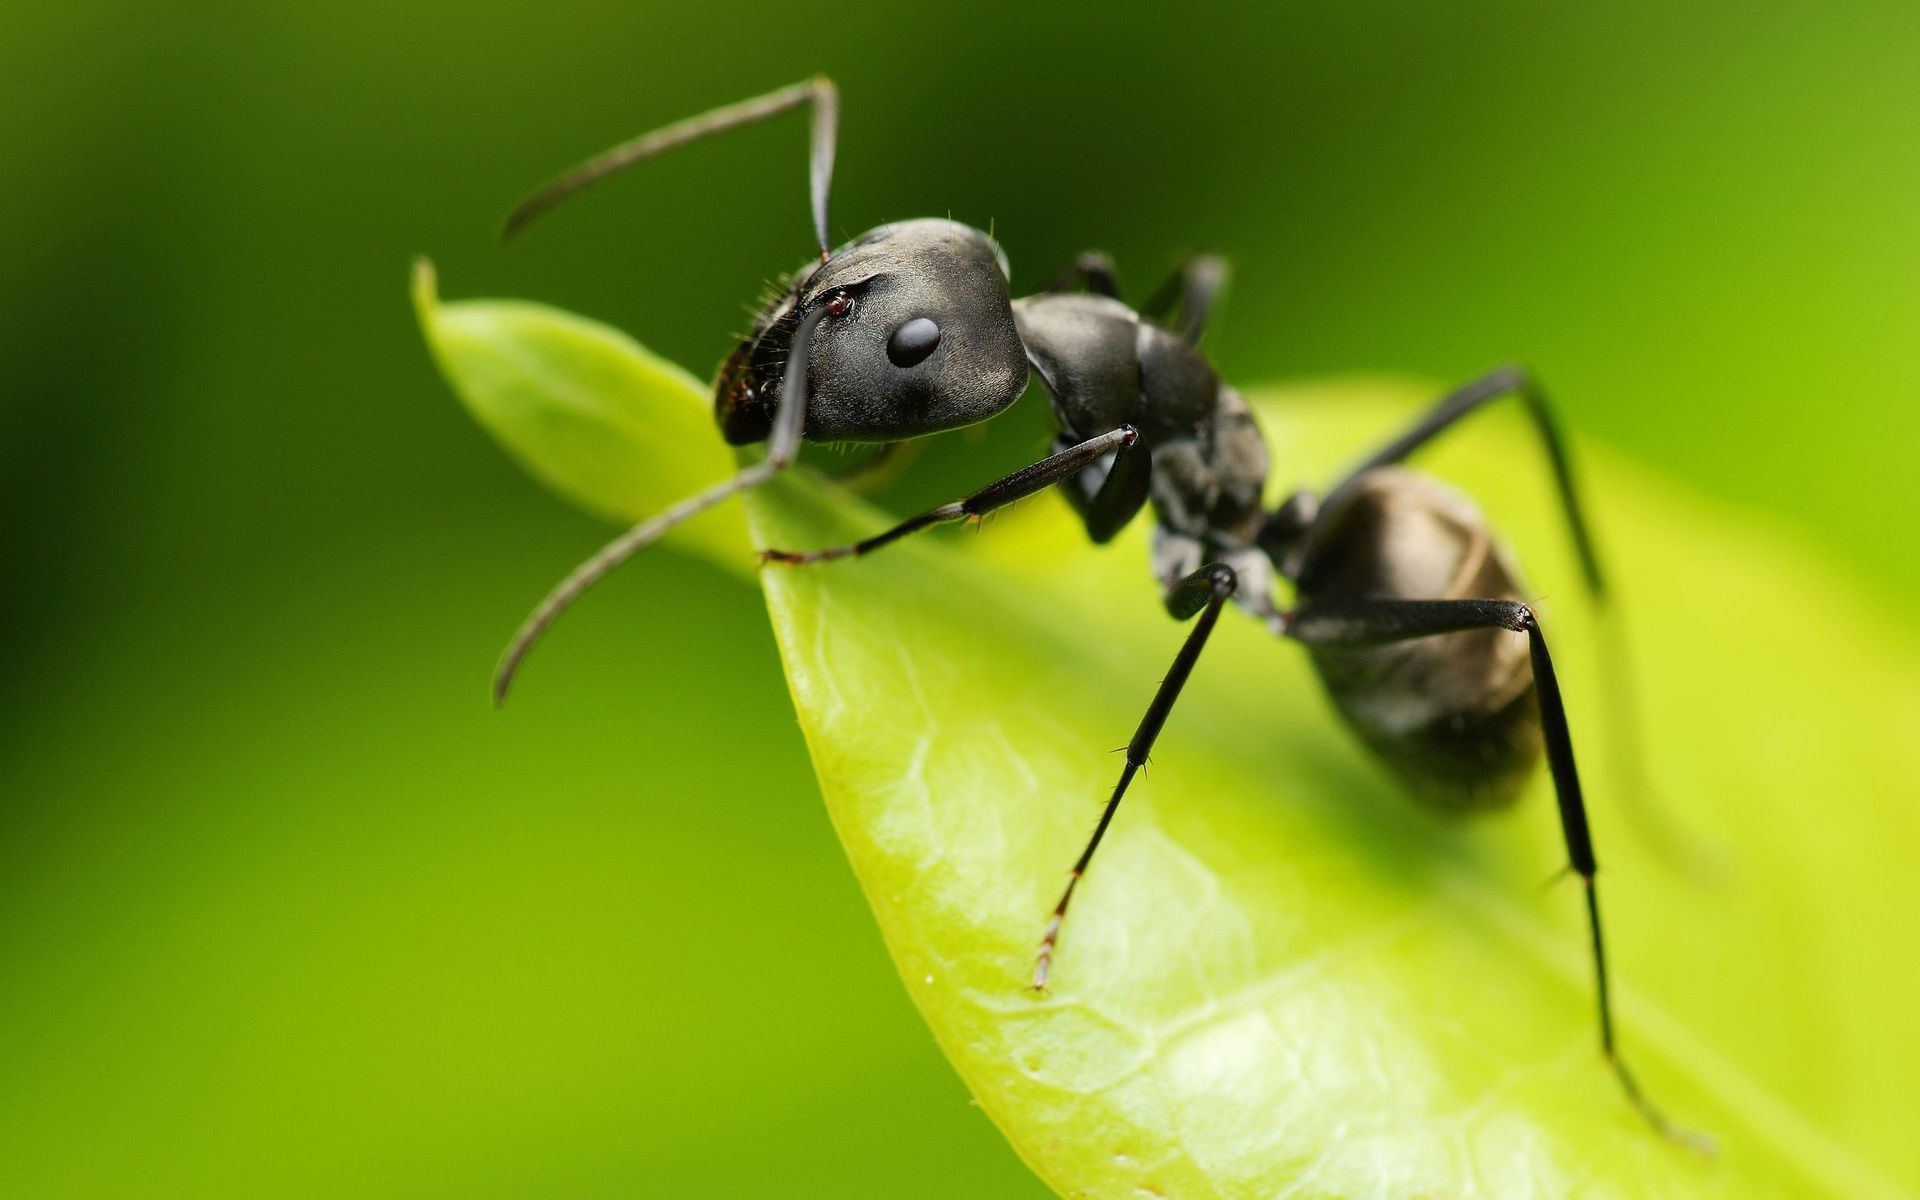 Ant Wallpaper Backgrounds